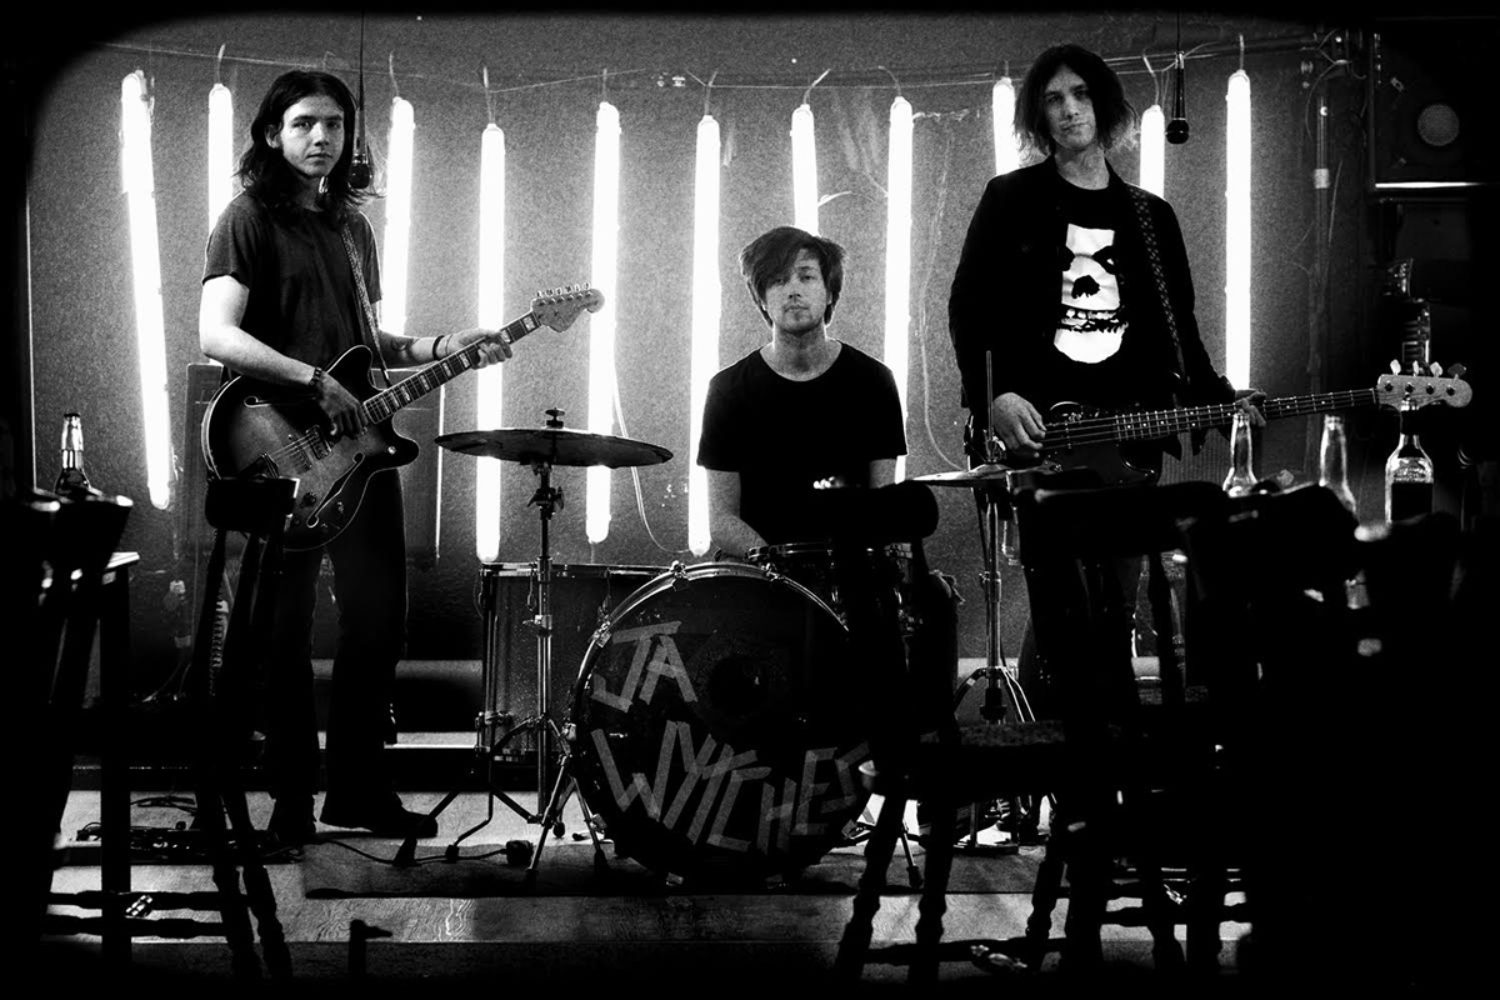 Tracks: The Wytches, Slaves, & More